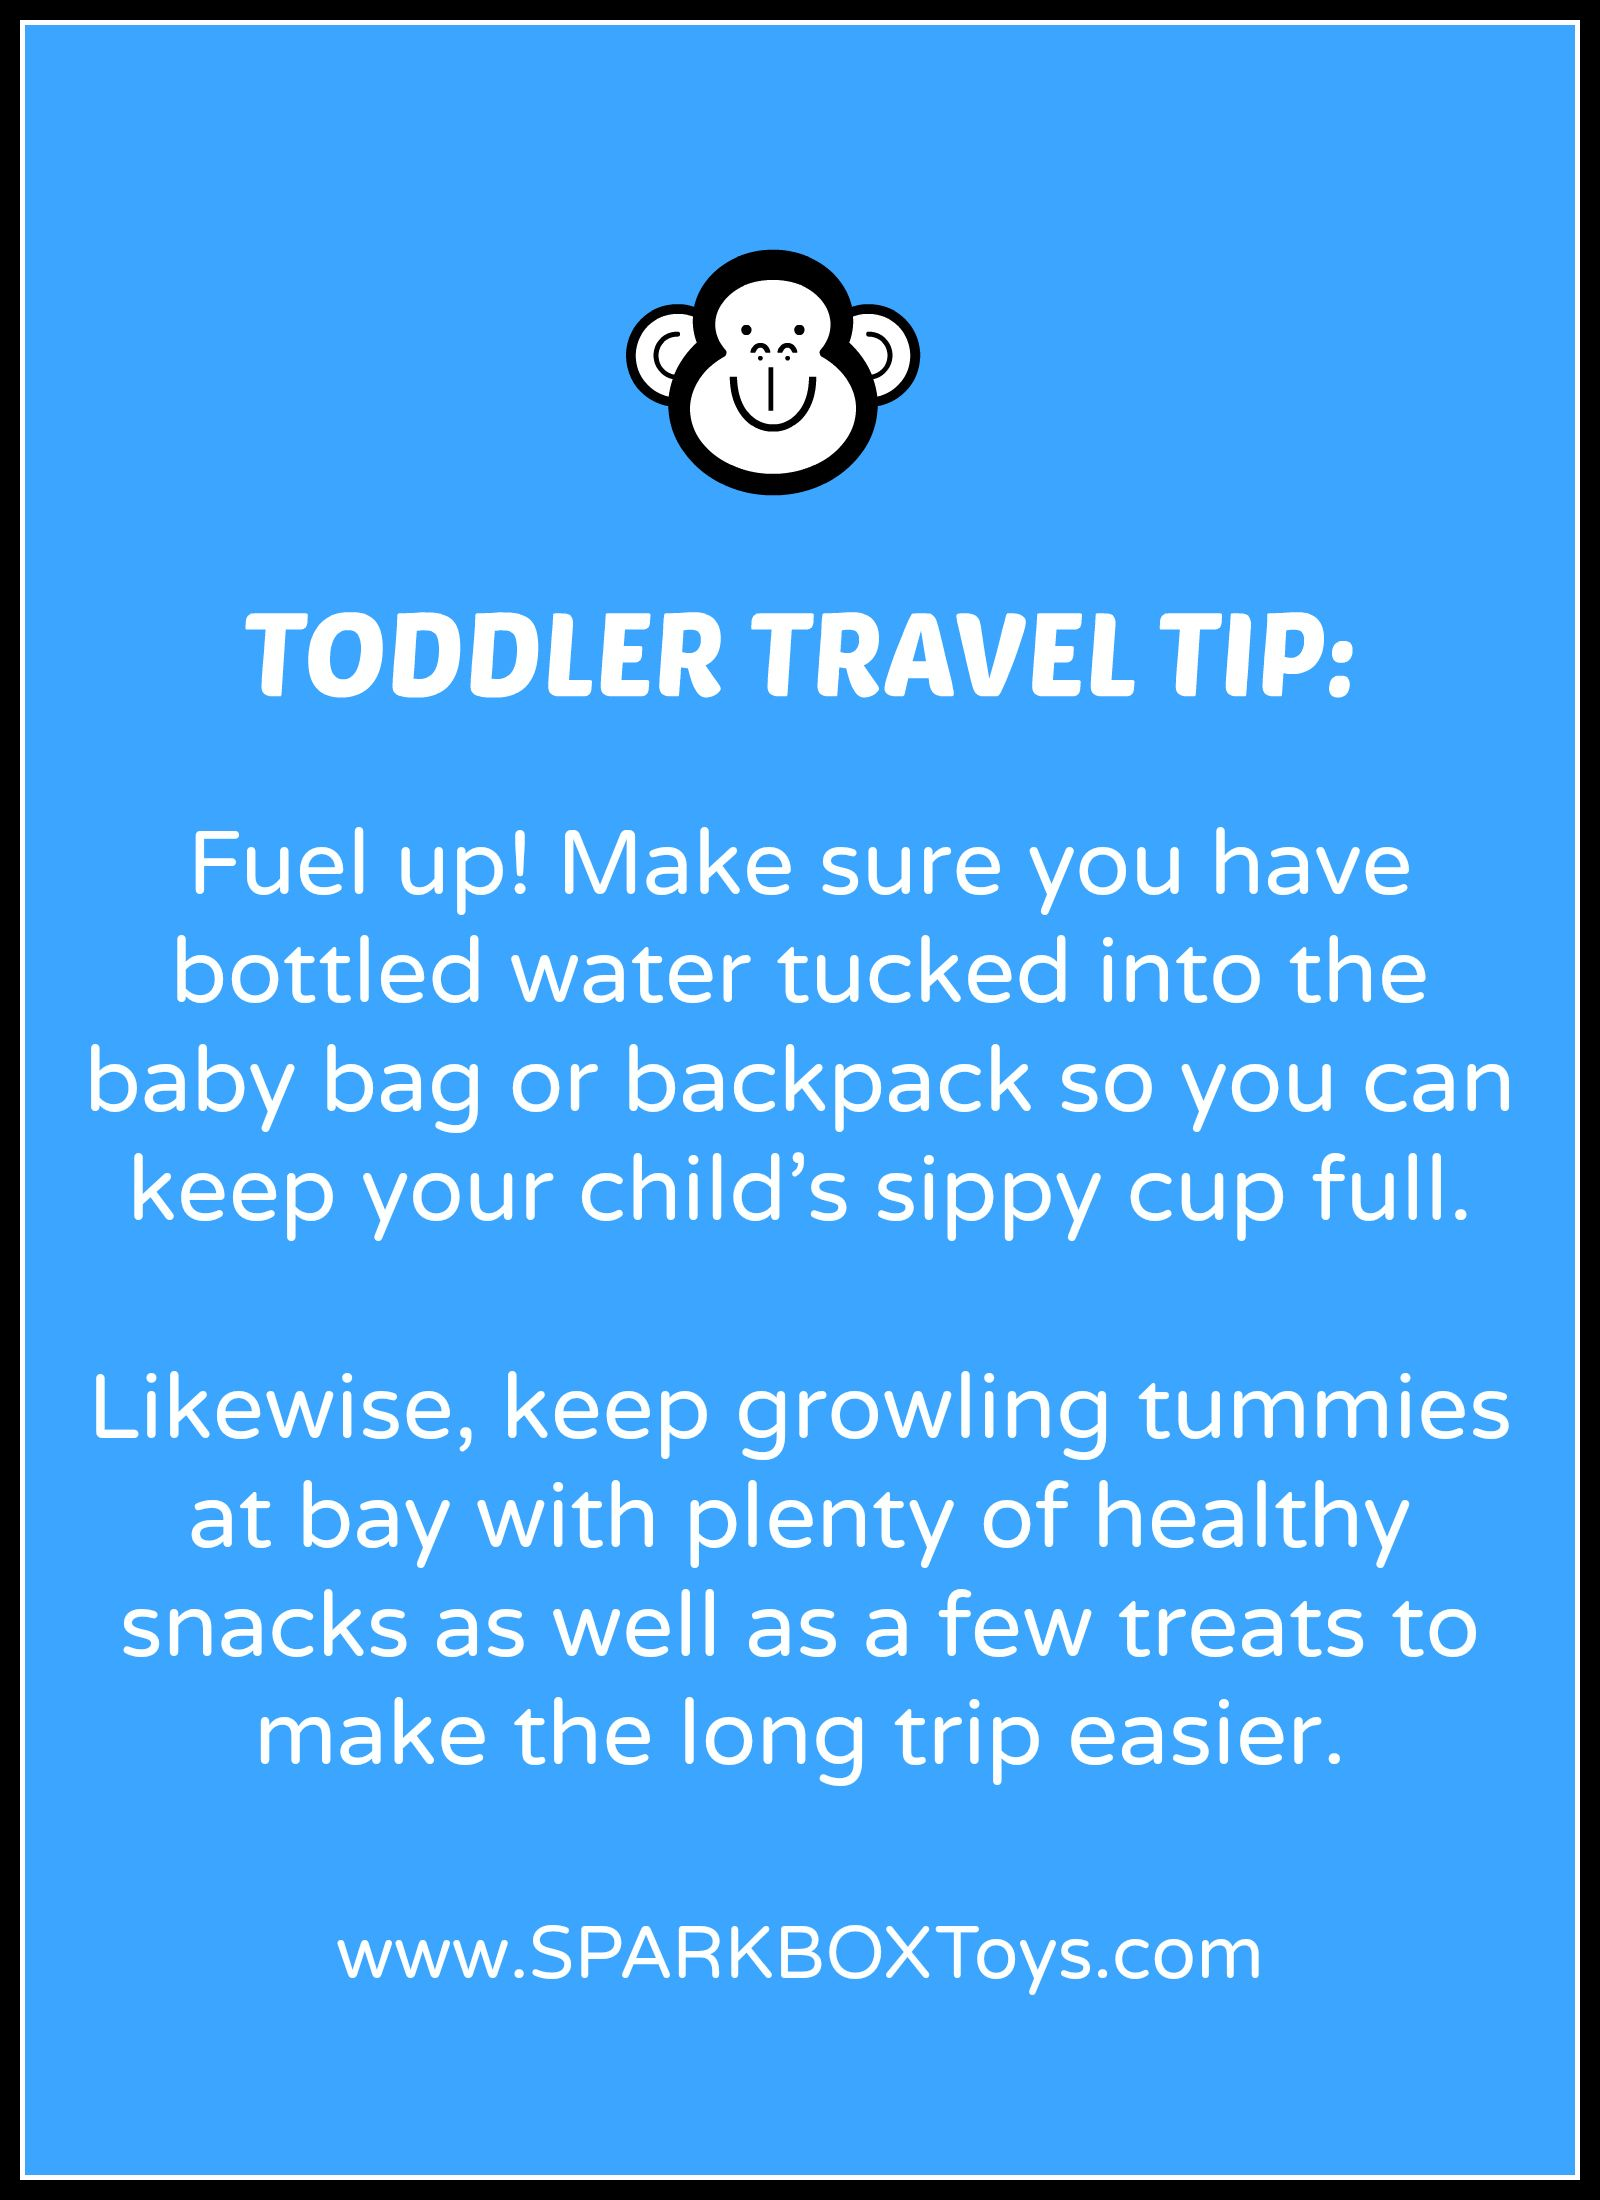 Toddler Travel Tip: Fuel up. Make sure you have bottled water tucked into the baby bag or backpack so you can keep your child's sippy cup full. Likewise, keep growling tummies at bay with plenty of healthy snacks as well as a few treats to make the long trip easier.  | #sparkbox #sparkbaby #playlearnreturn #parenting | http://www.sparkboxtoys.com